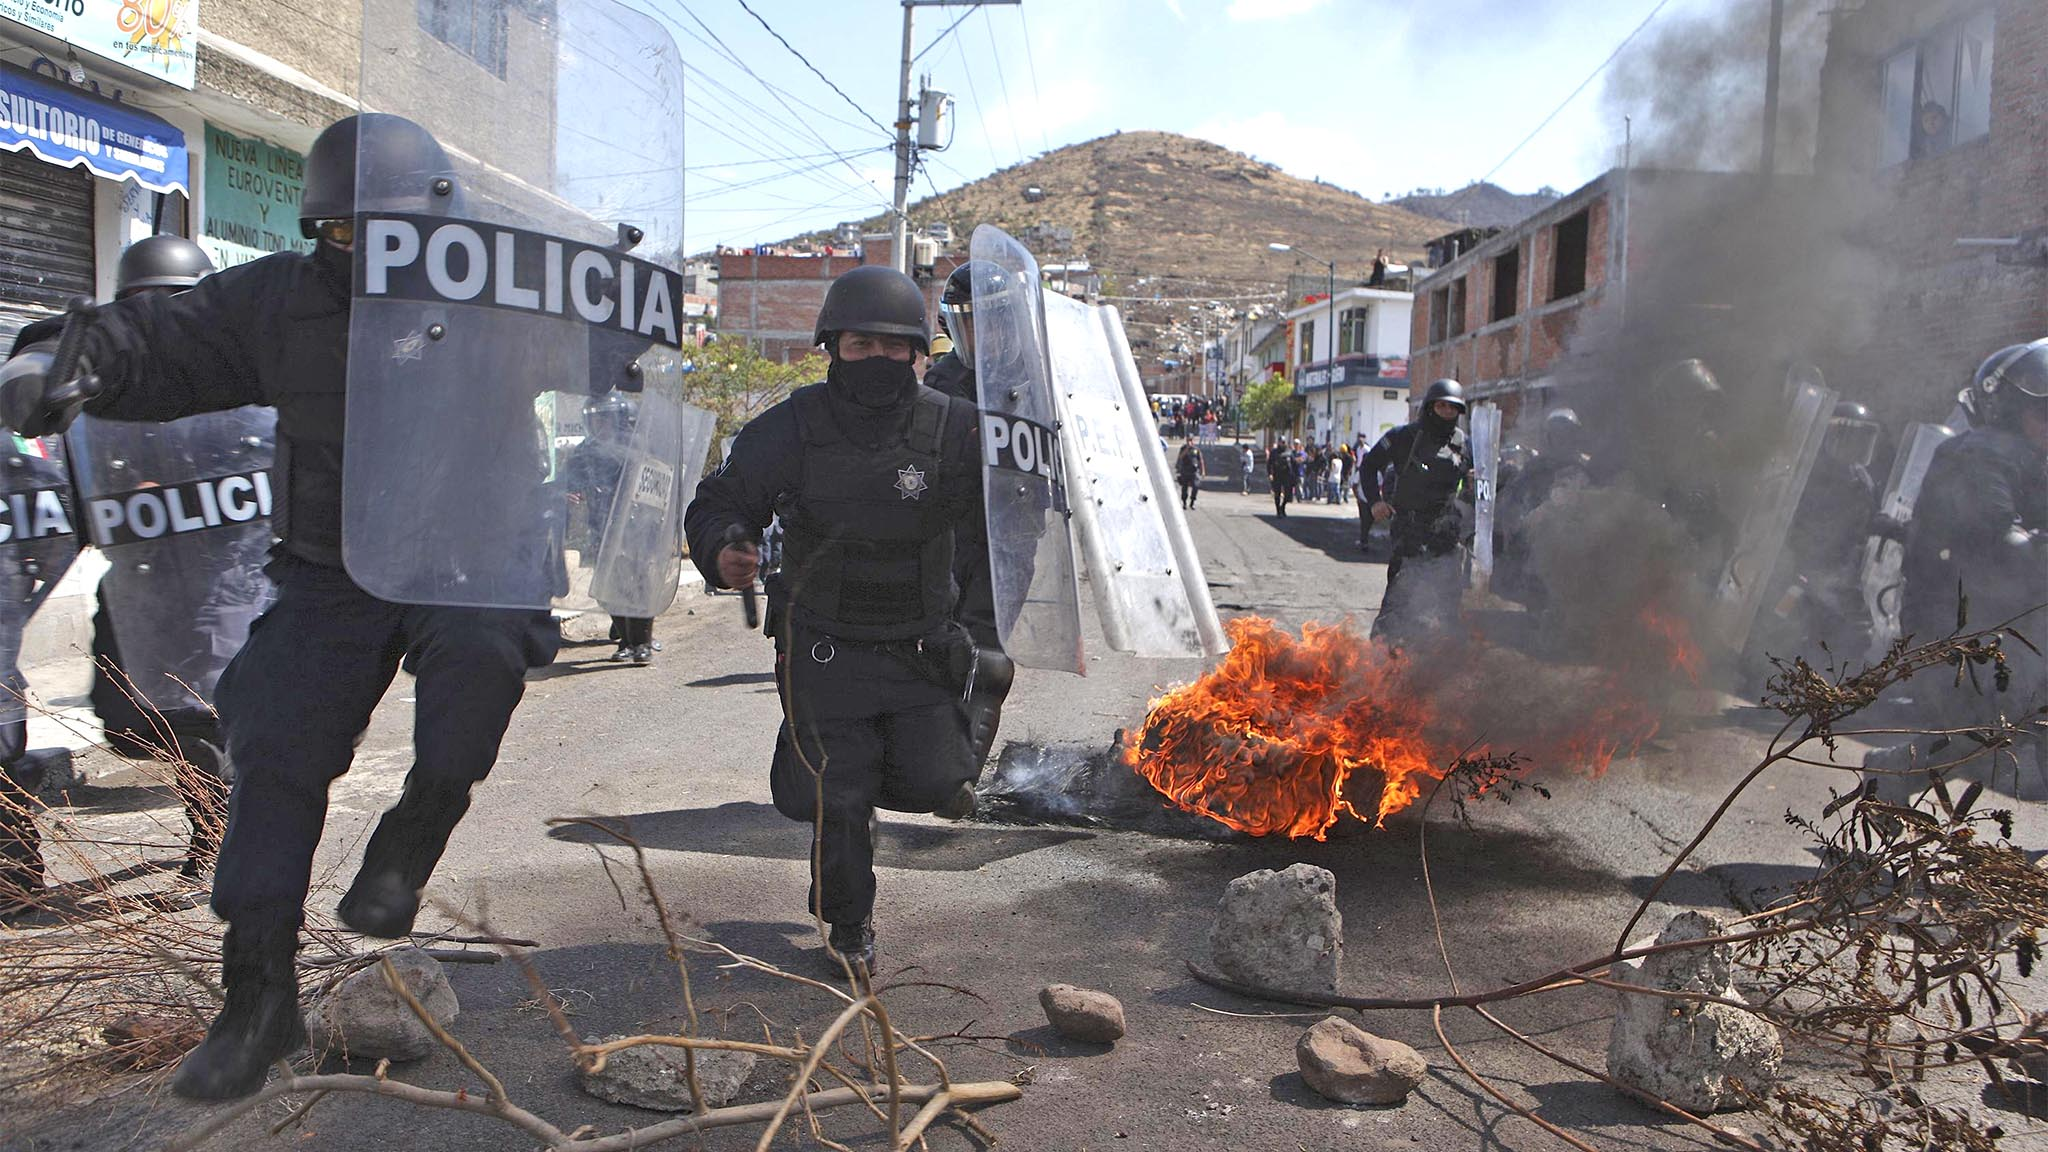 Riot policemen charge at squatters, who were throwing rocks at them, during an eviction at a squatter settlement in Morelia